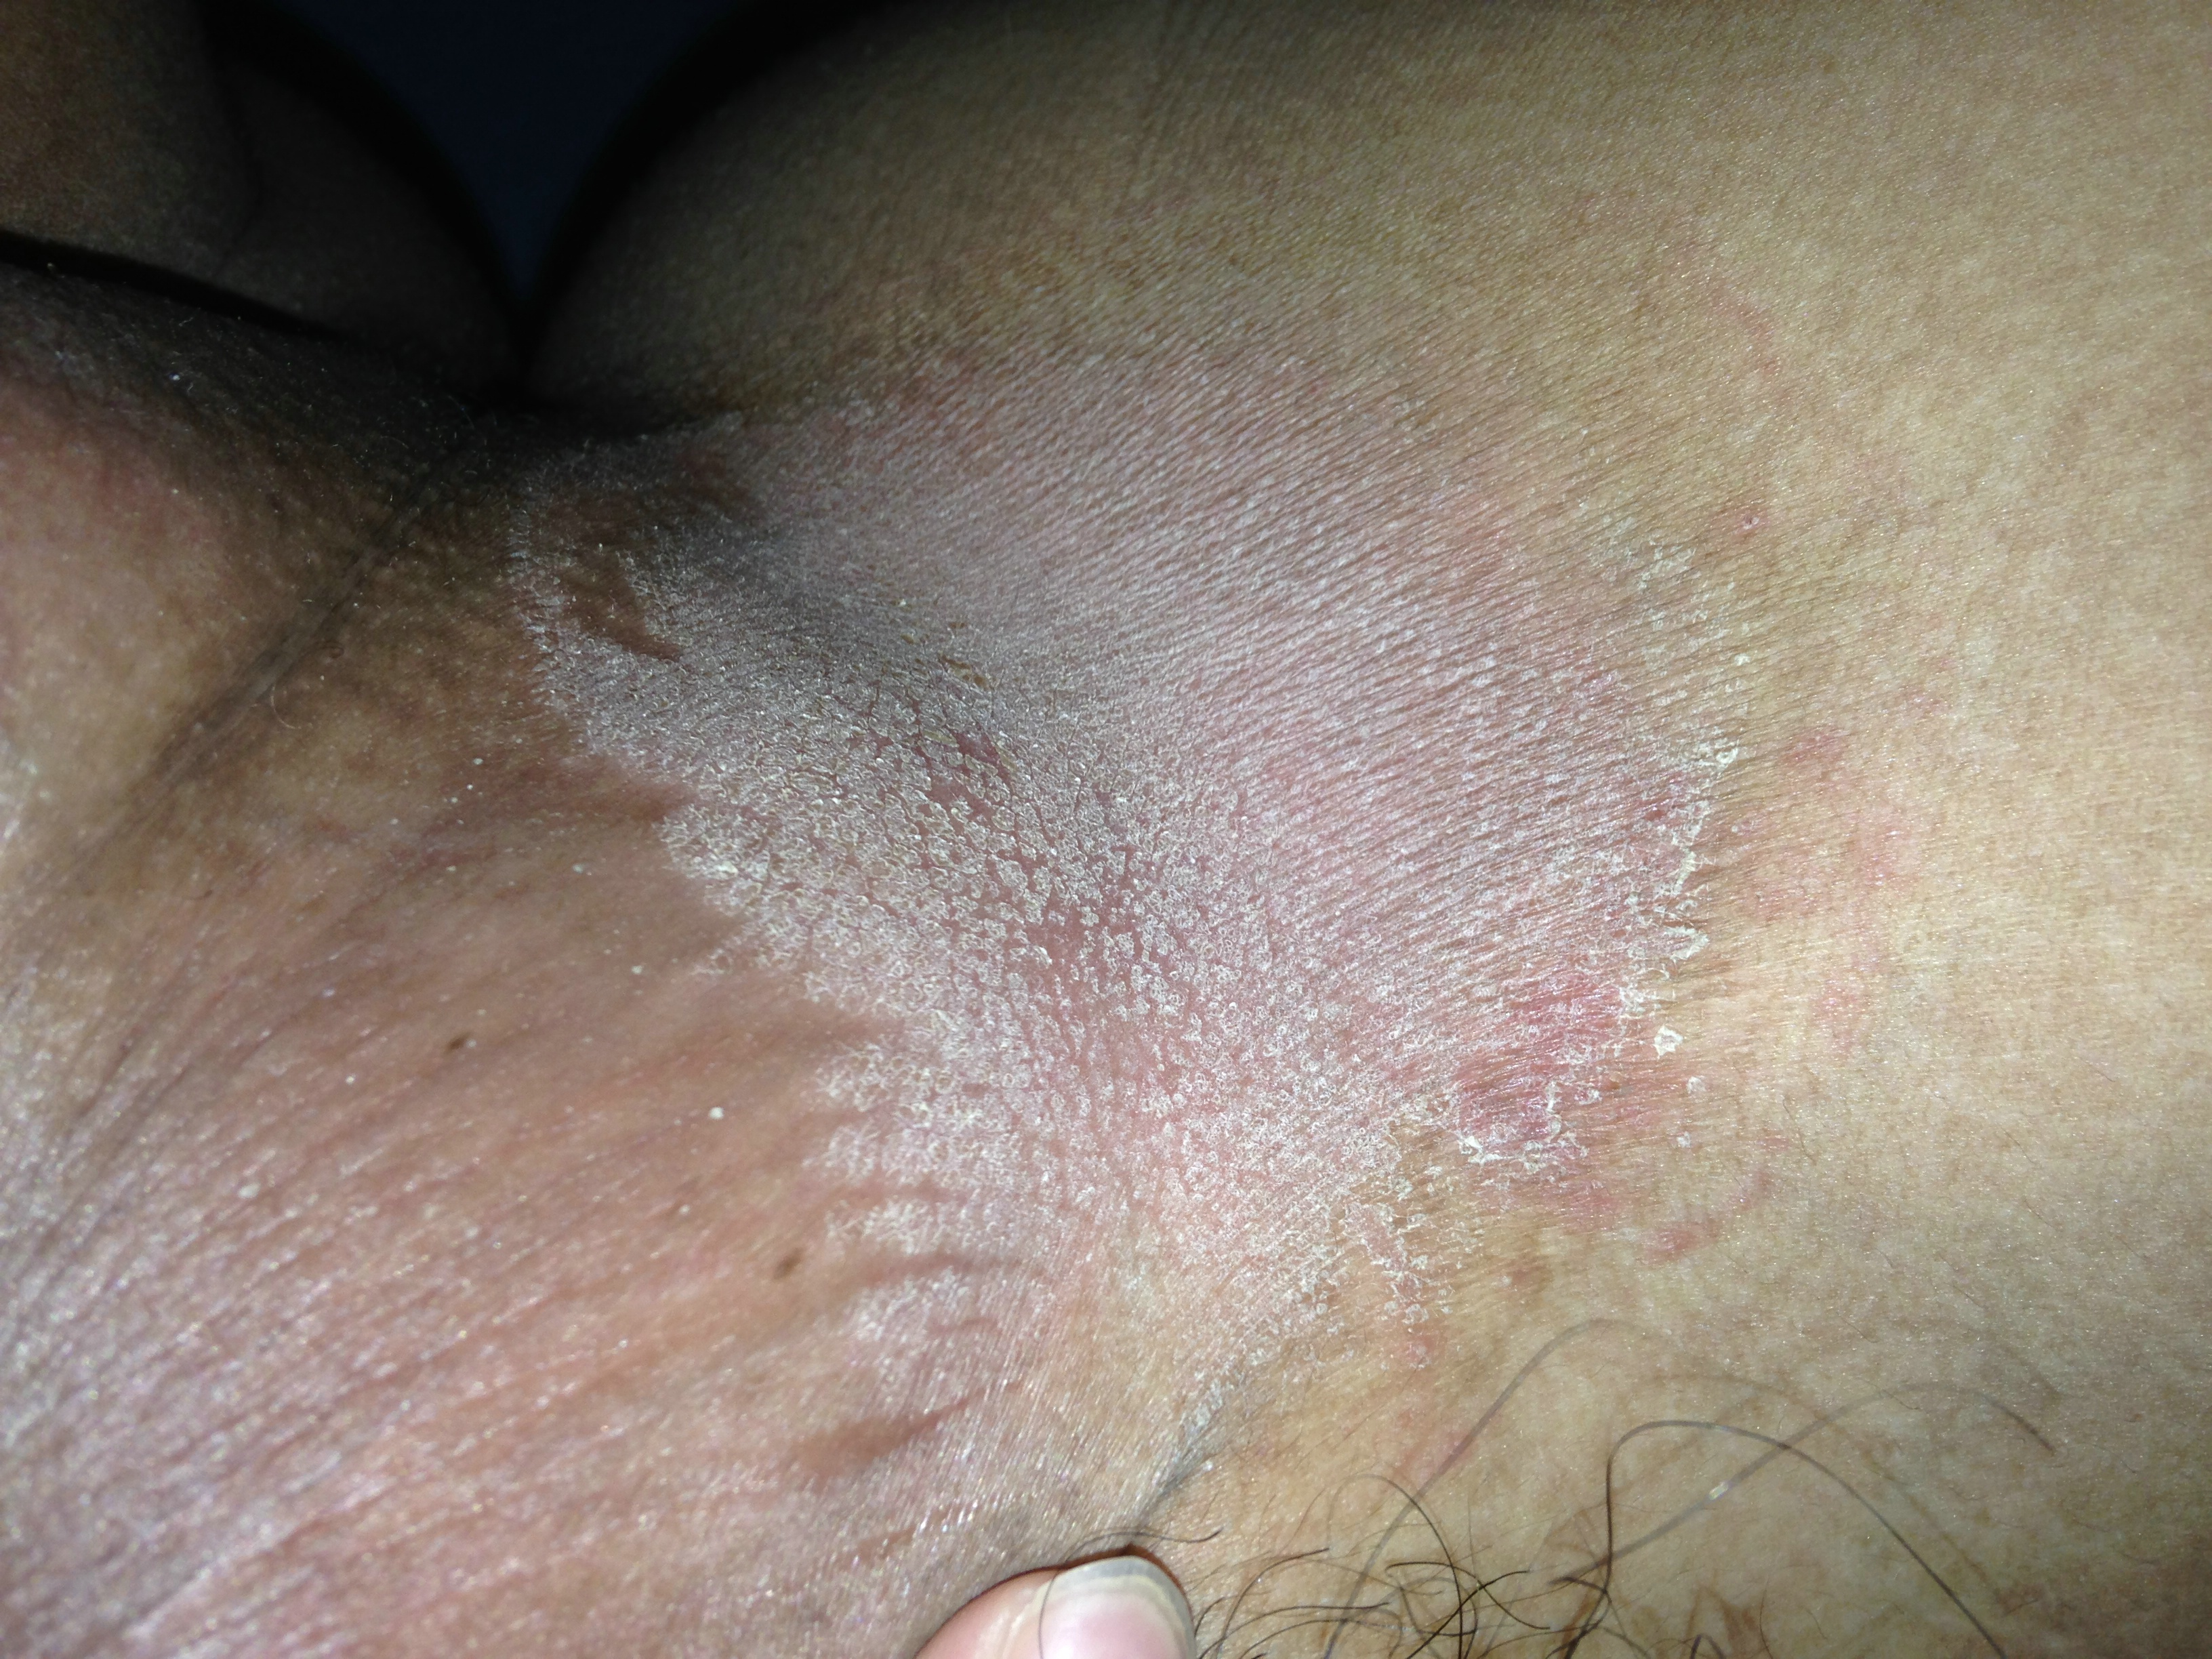 Vaginal rash and itch